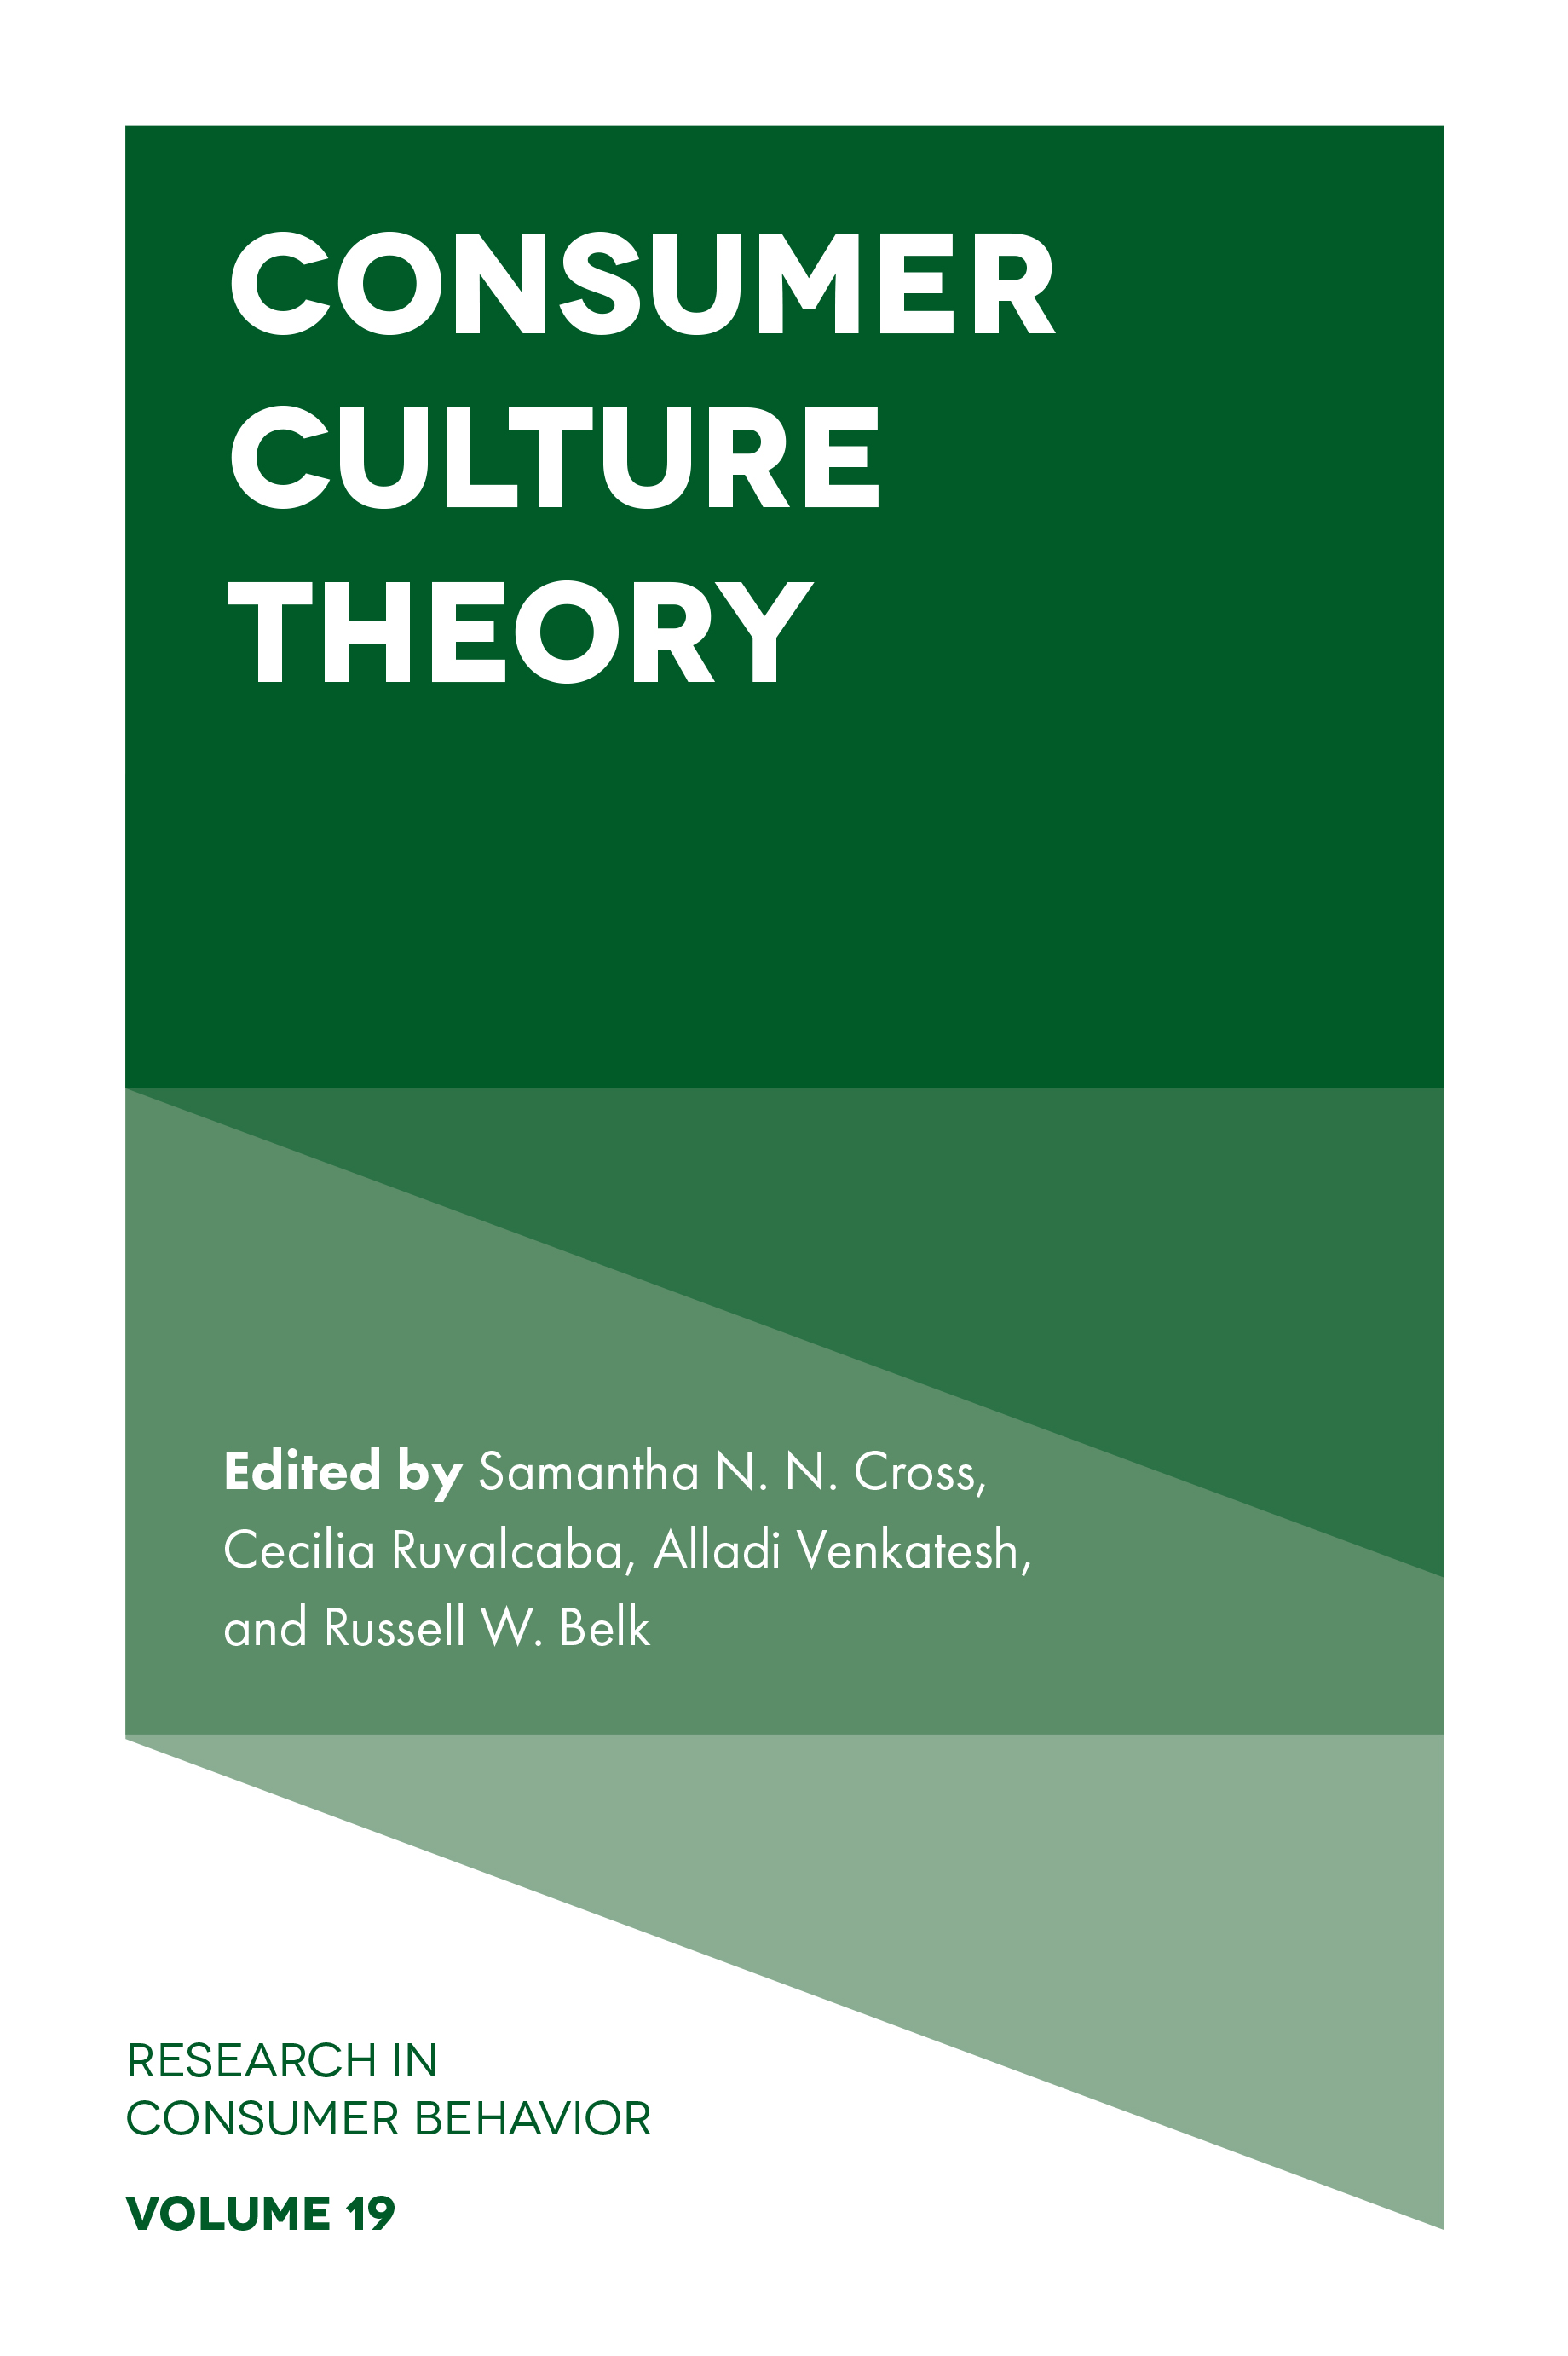 Book cover for Consumer Culture Theory a book by Samantha N. N. Cross, Cecilia  Ruvalcaba, Alladi  Venkatesh, Russell W. Belk